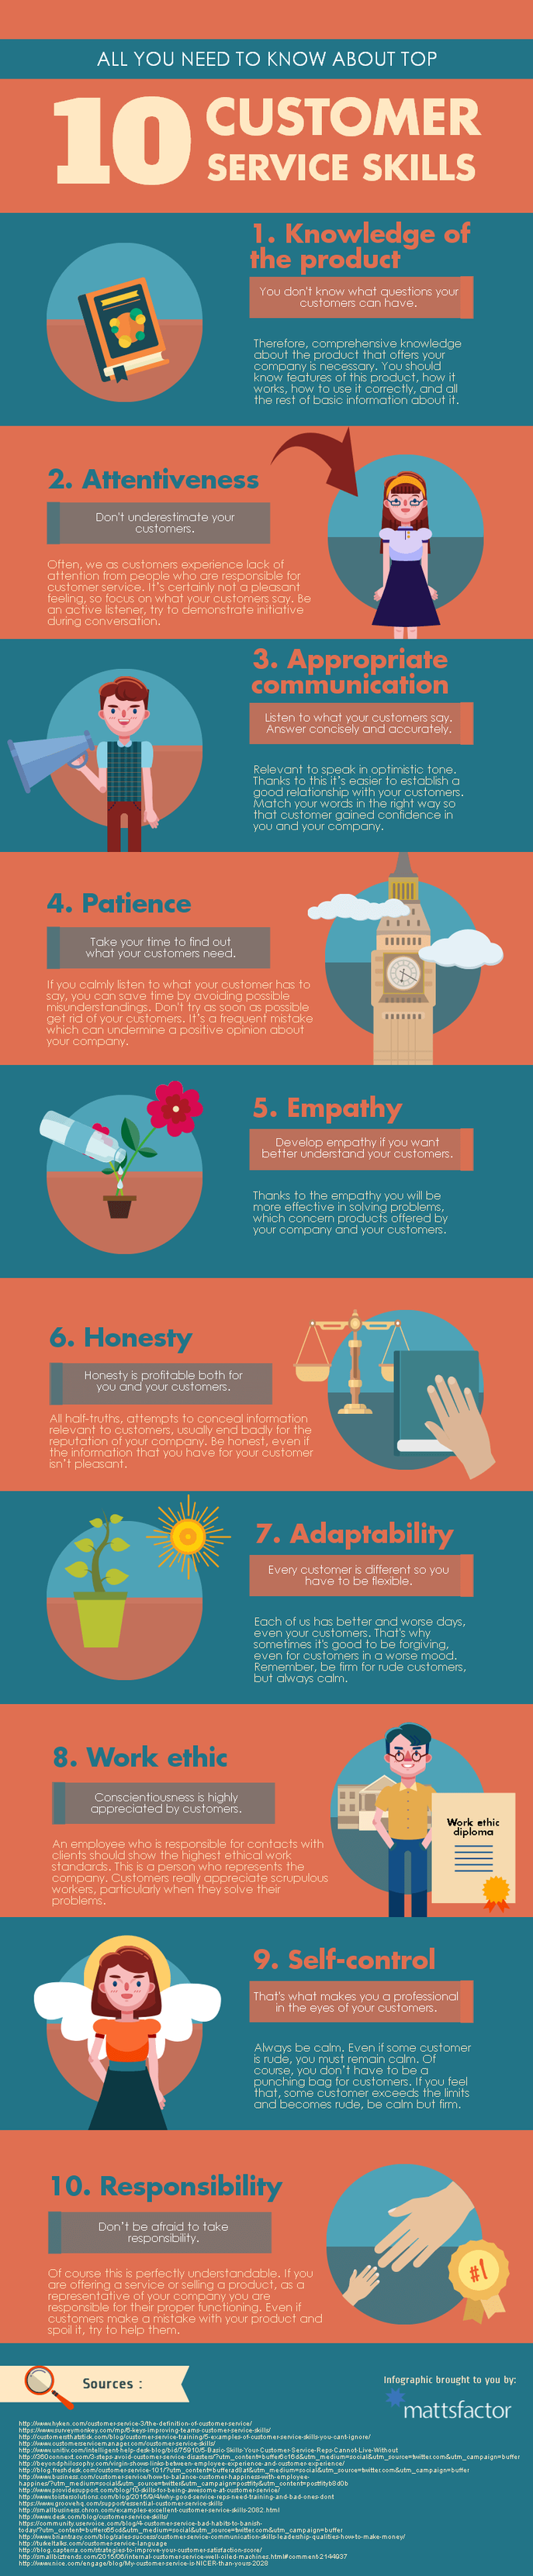 Customer Service Skills to crush your competition